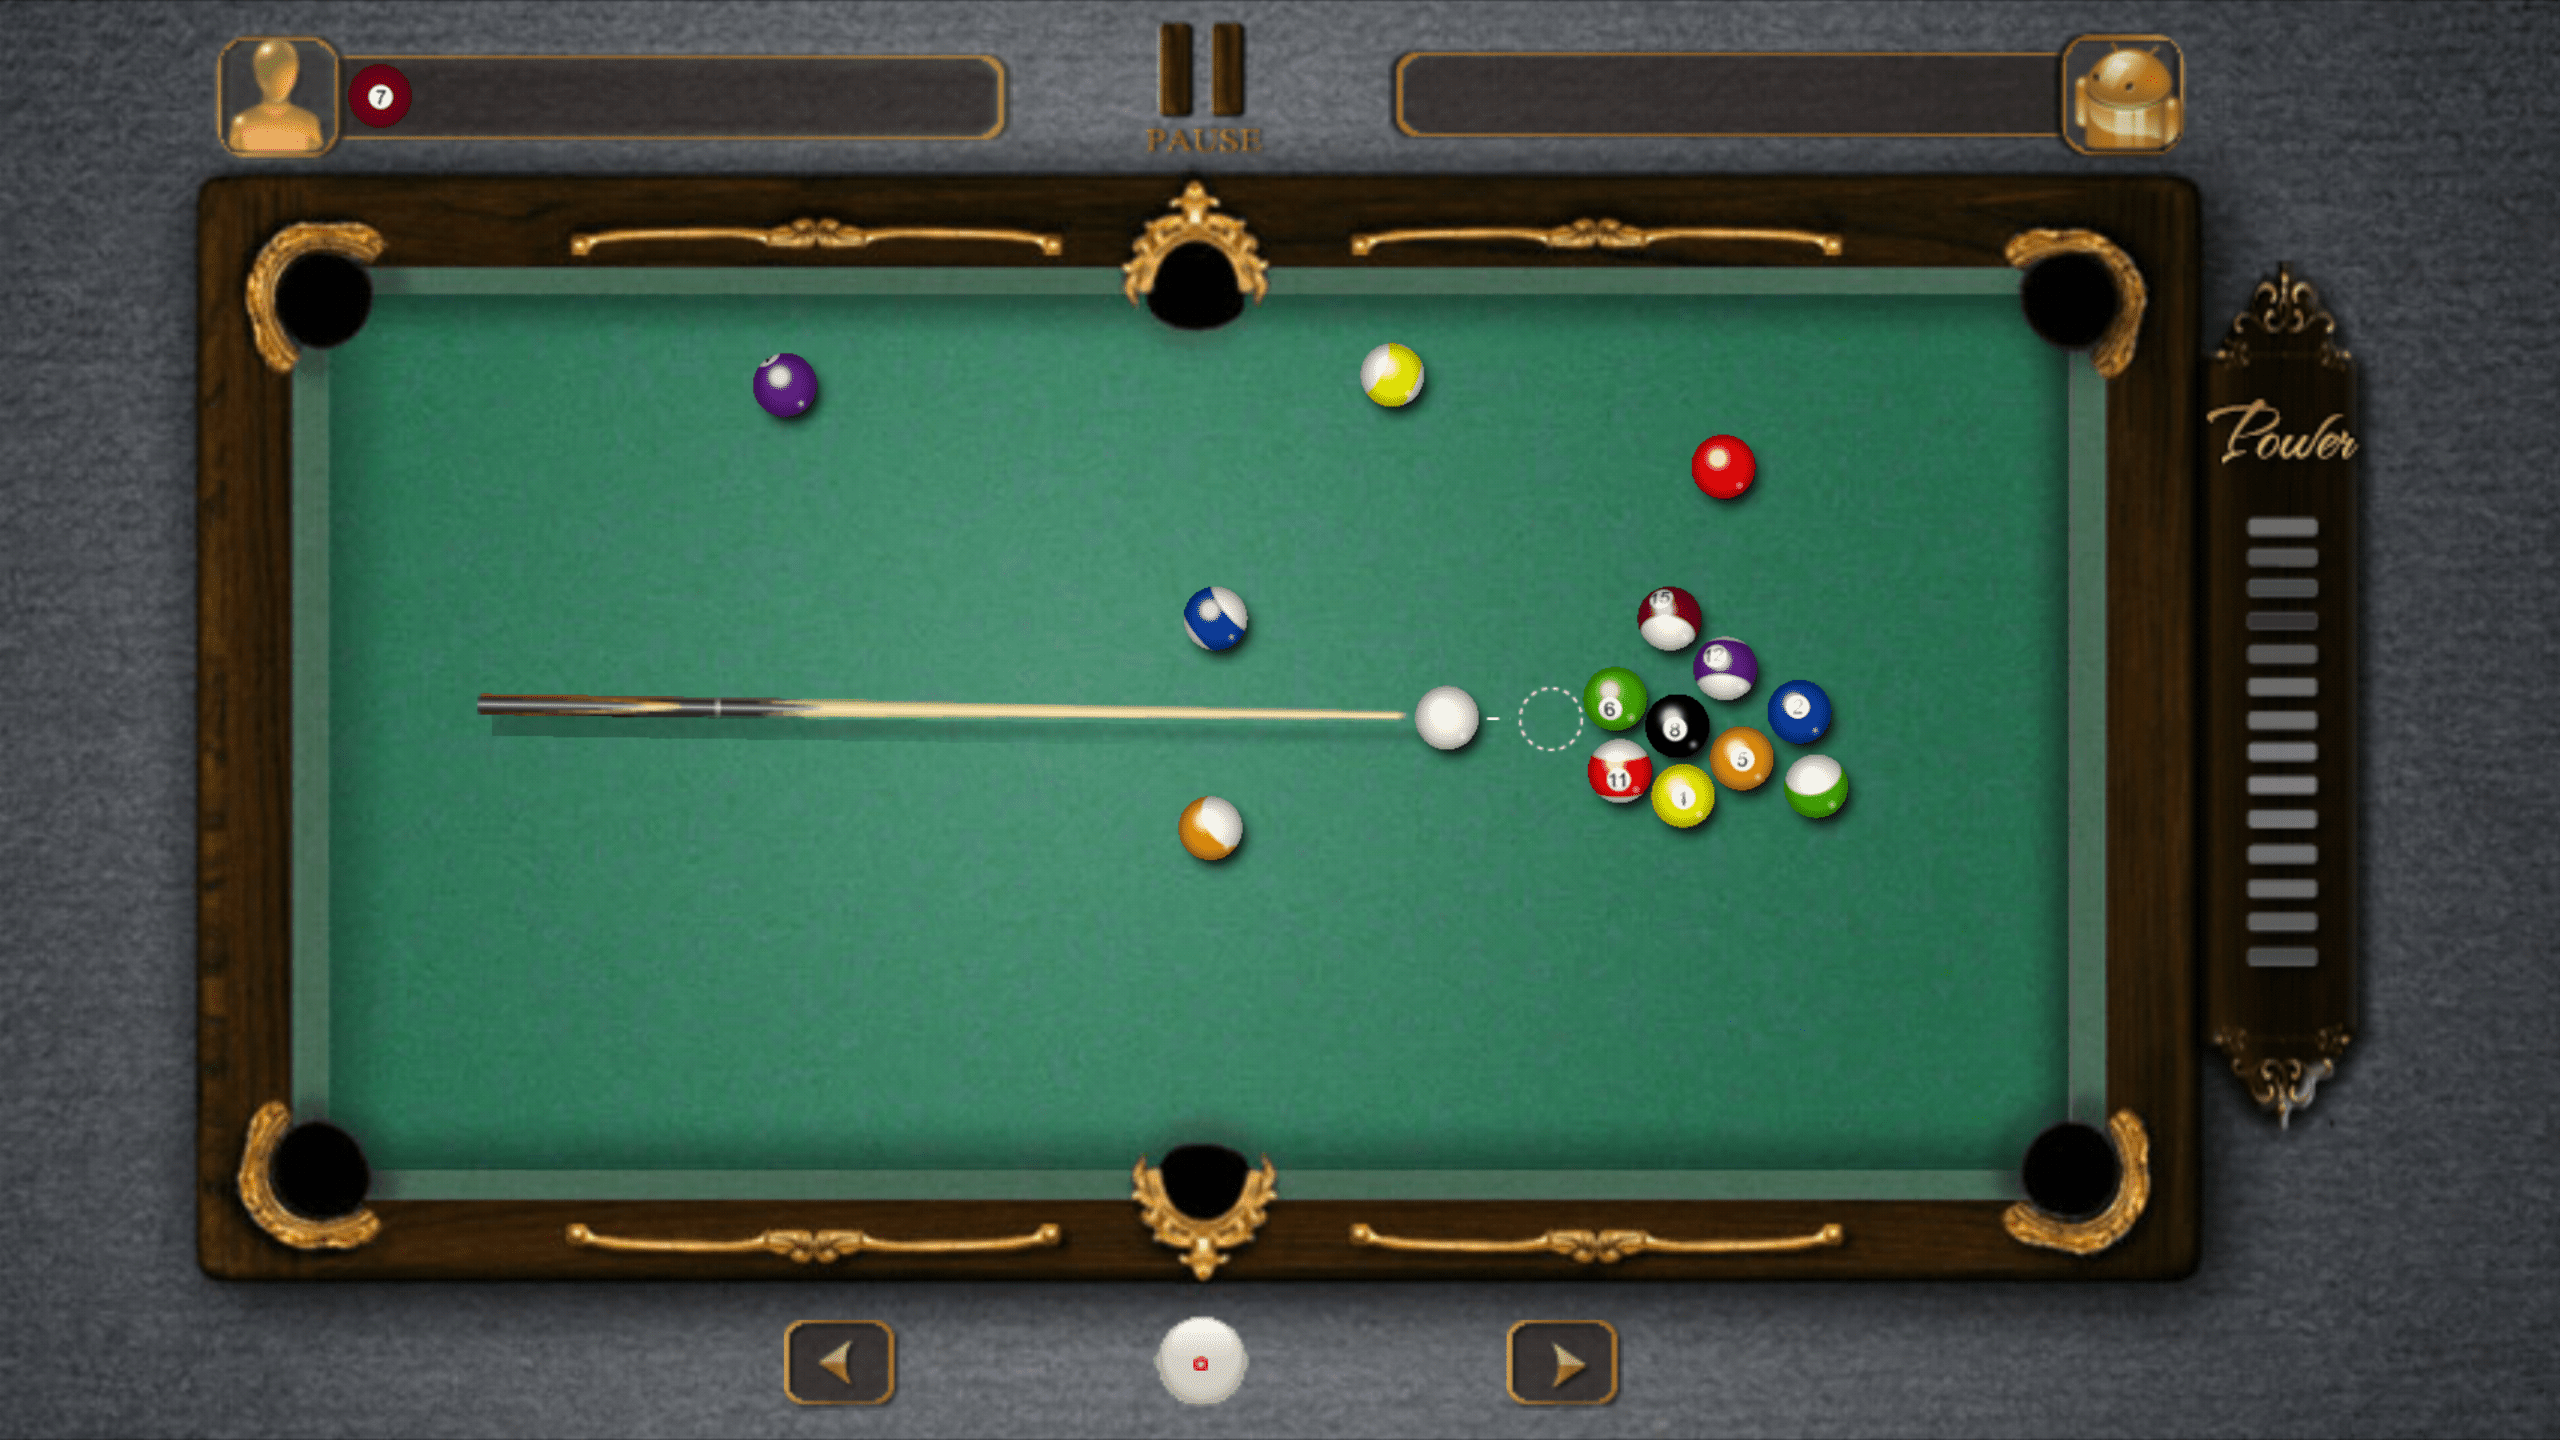 bet pool games on pc